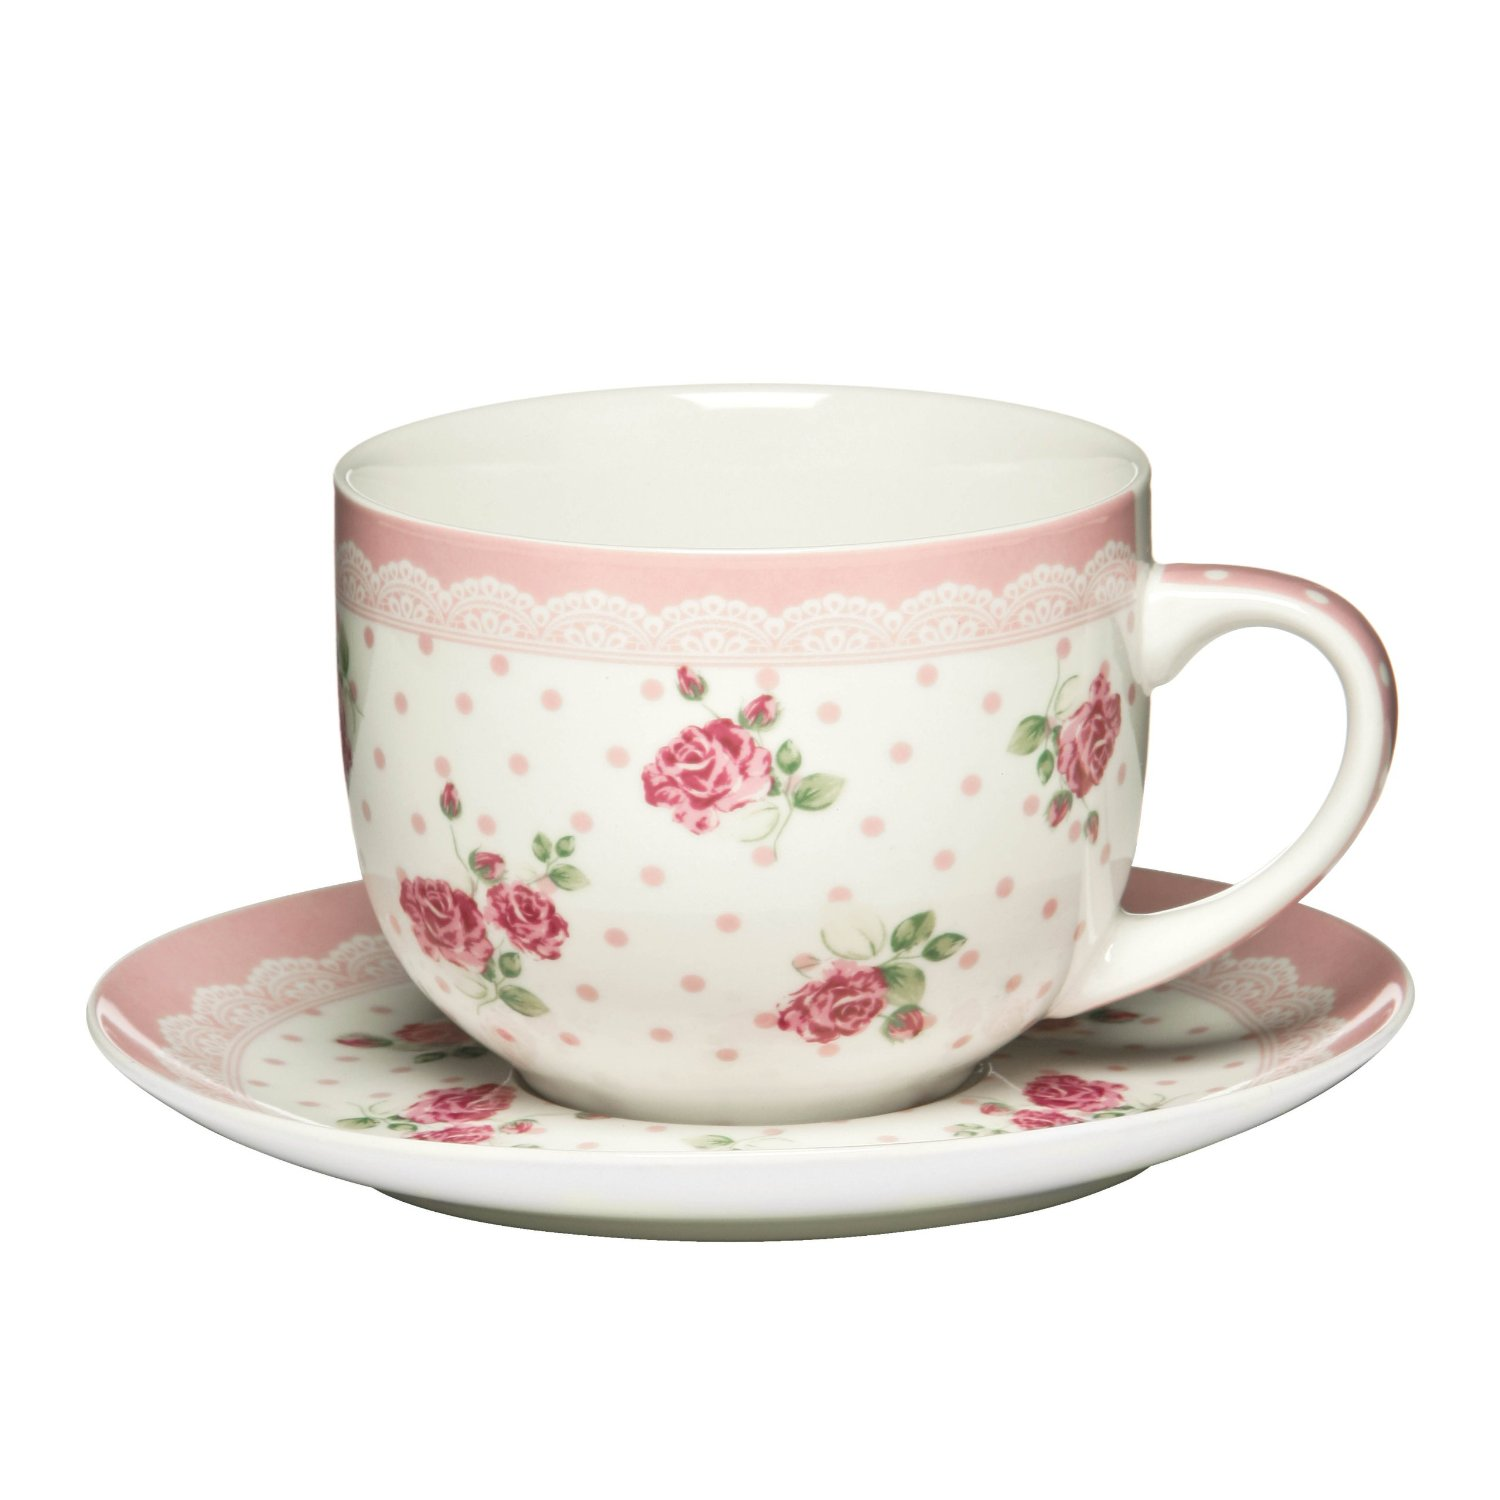 PREMIER LARGE 16OZ ROSE PINK BONE CHINA CUP AND SAUCER